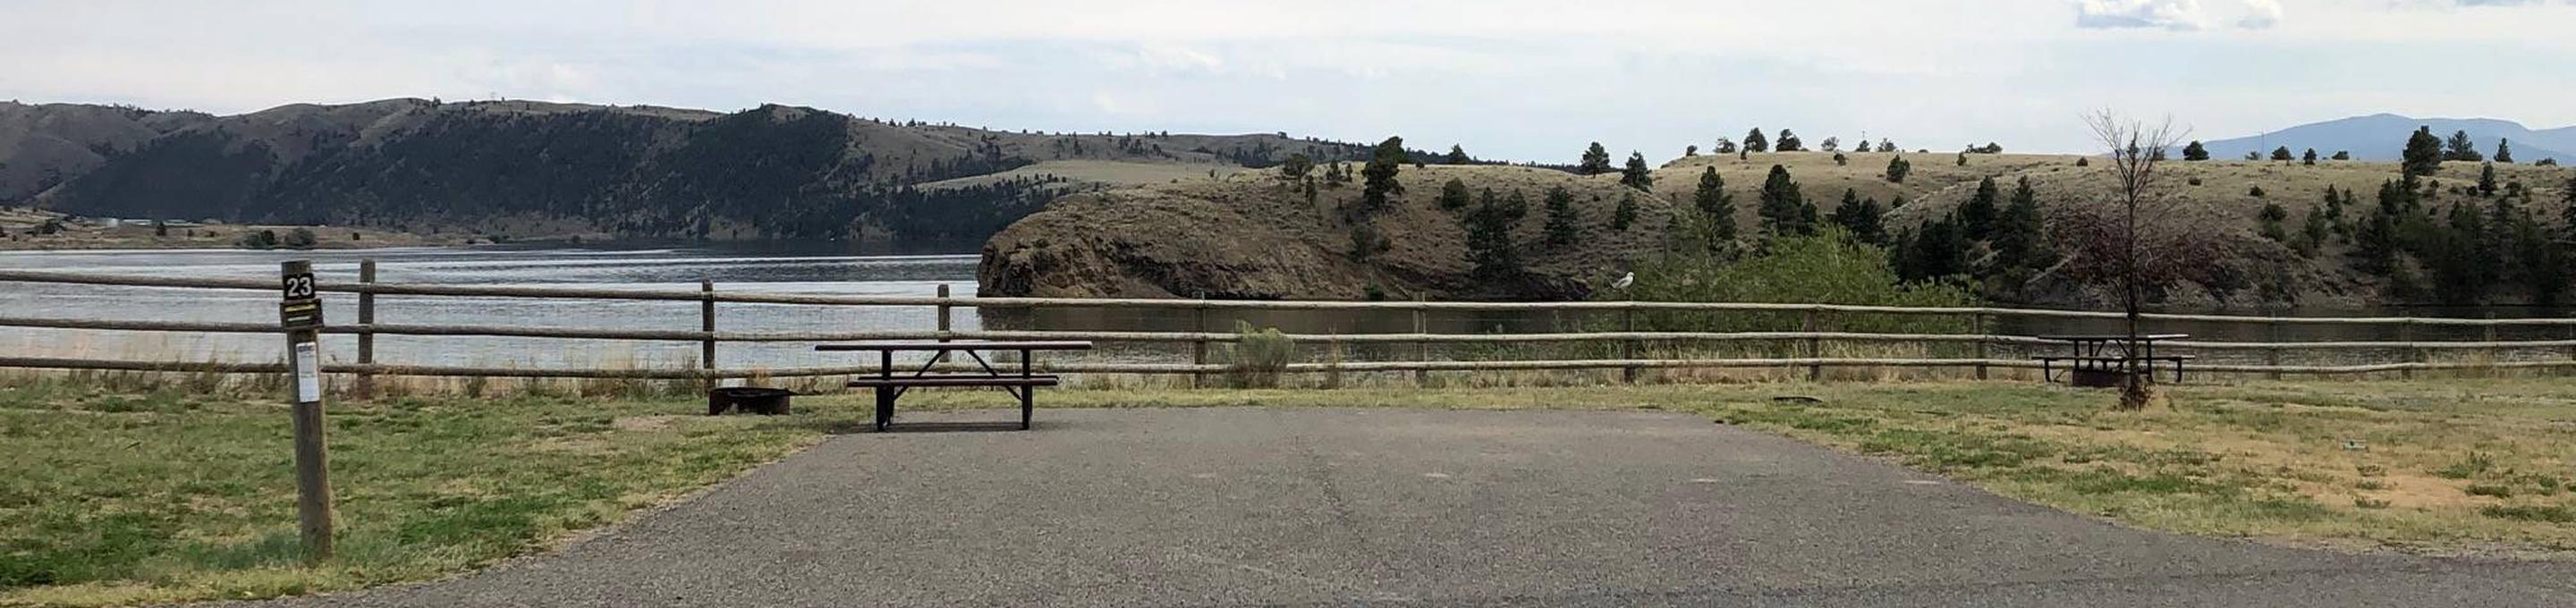 Site 23 at BLM White Sandy Campground. Paved access within campground. Paved camping pad with fire pit and picnic table. No shade at this location. Lakeside campsite on Hauser Lake. Wooden fence in the background to protect bank stabilization.Site 23 BLM White Sandy Campground.